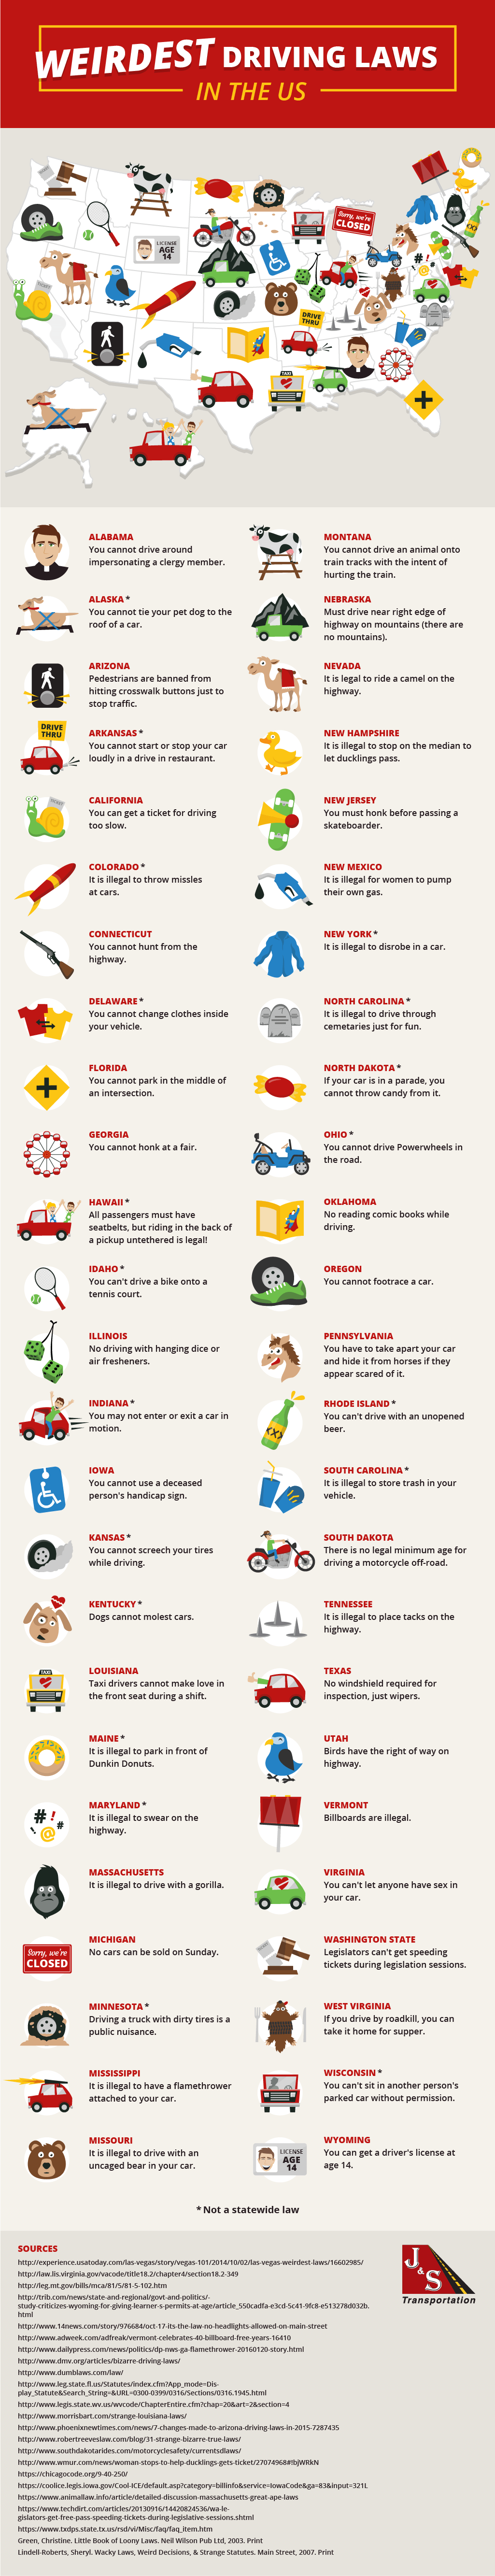 The Weirdest Driving Laws in the US Infographic